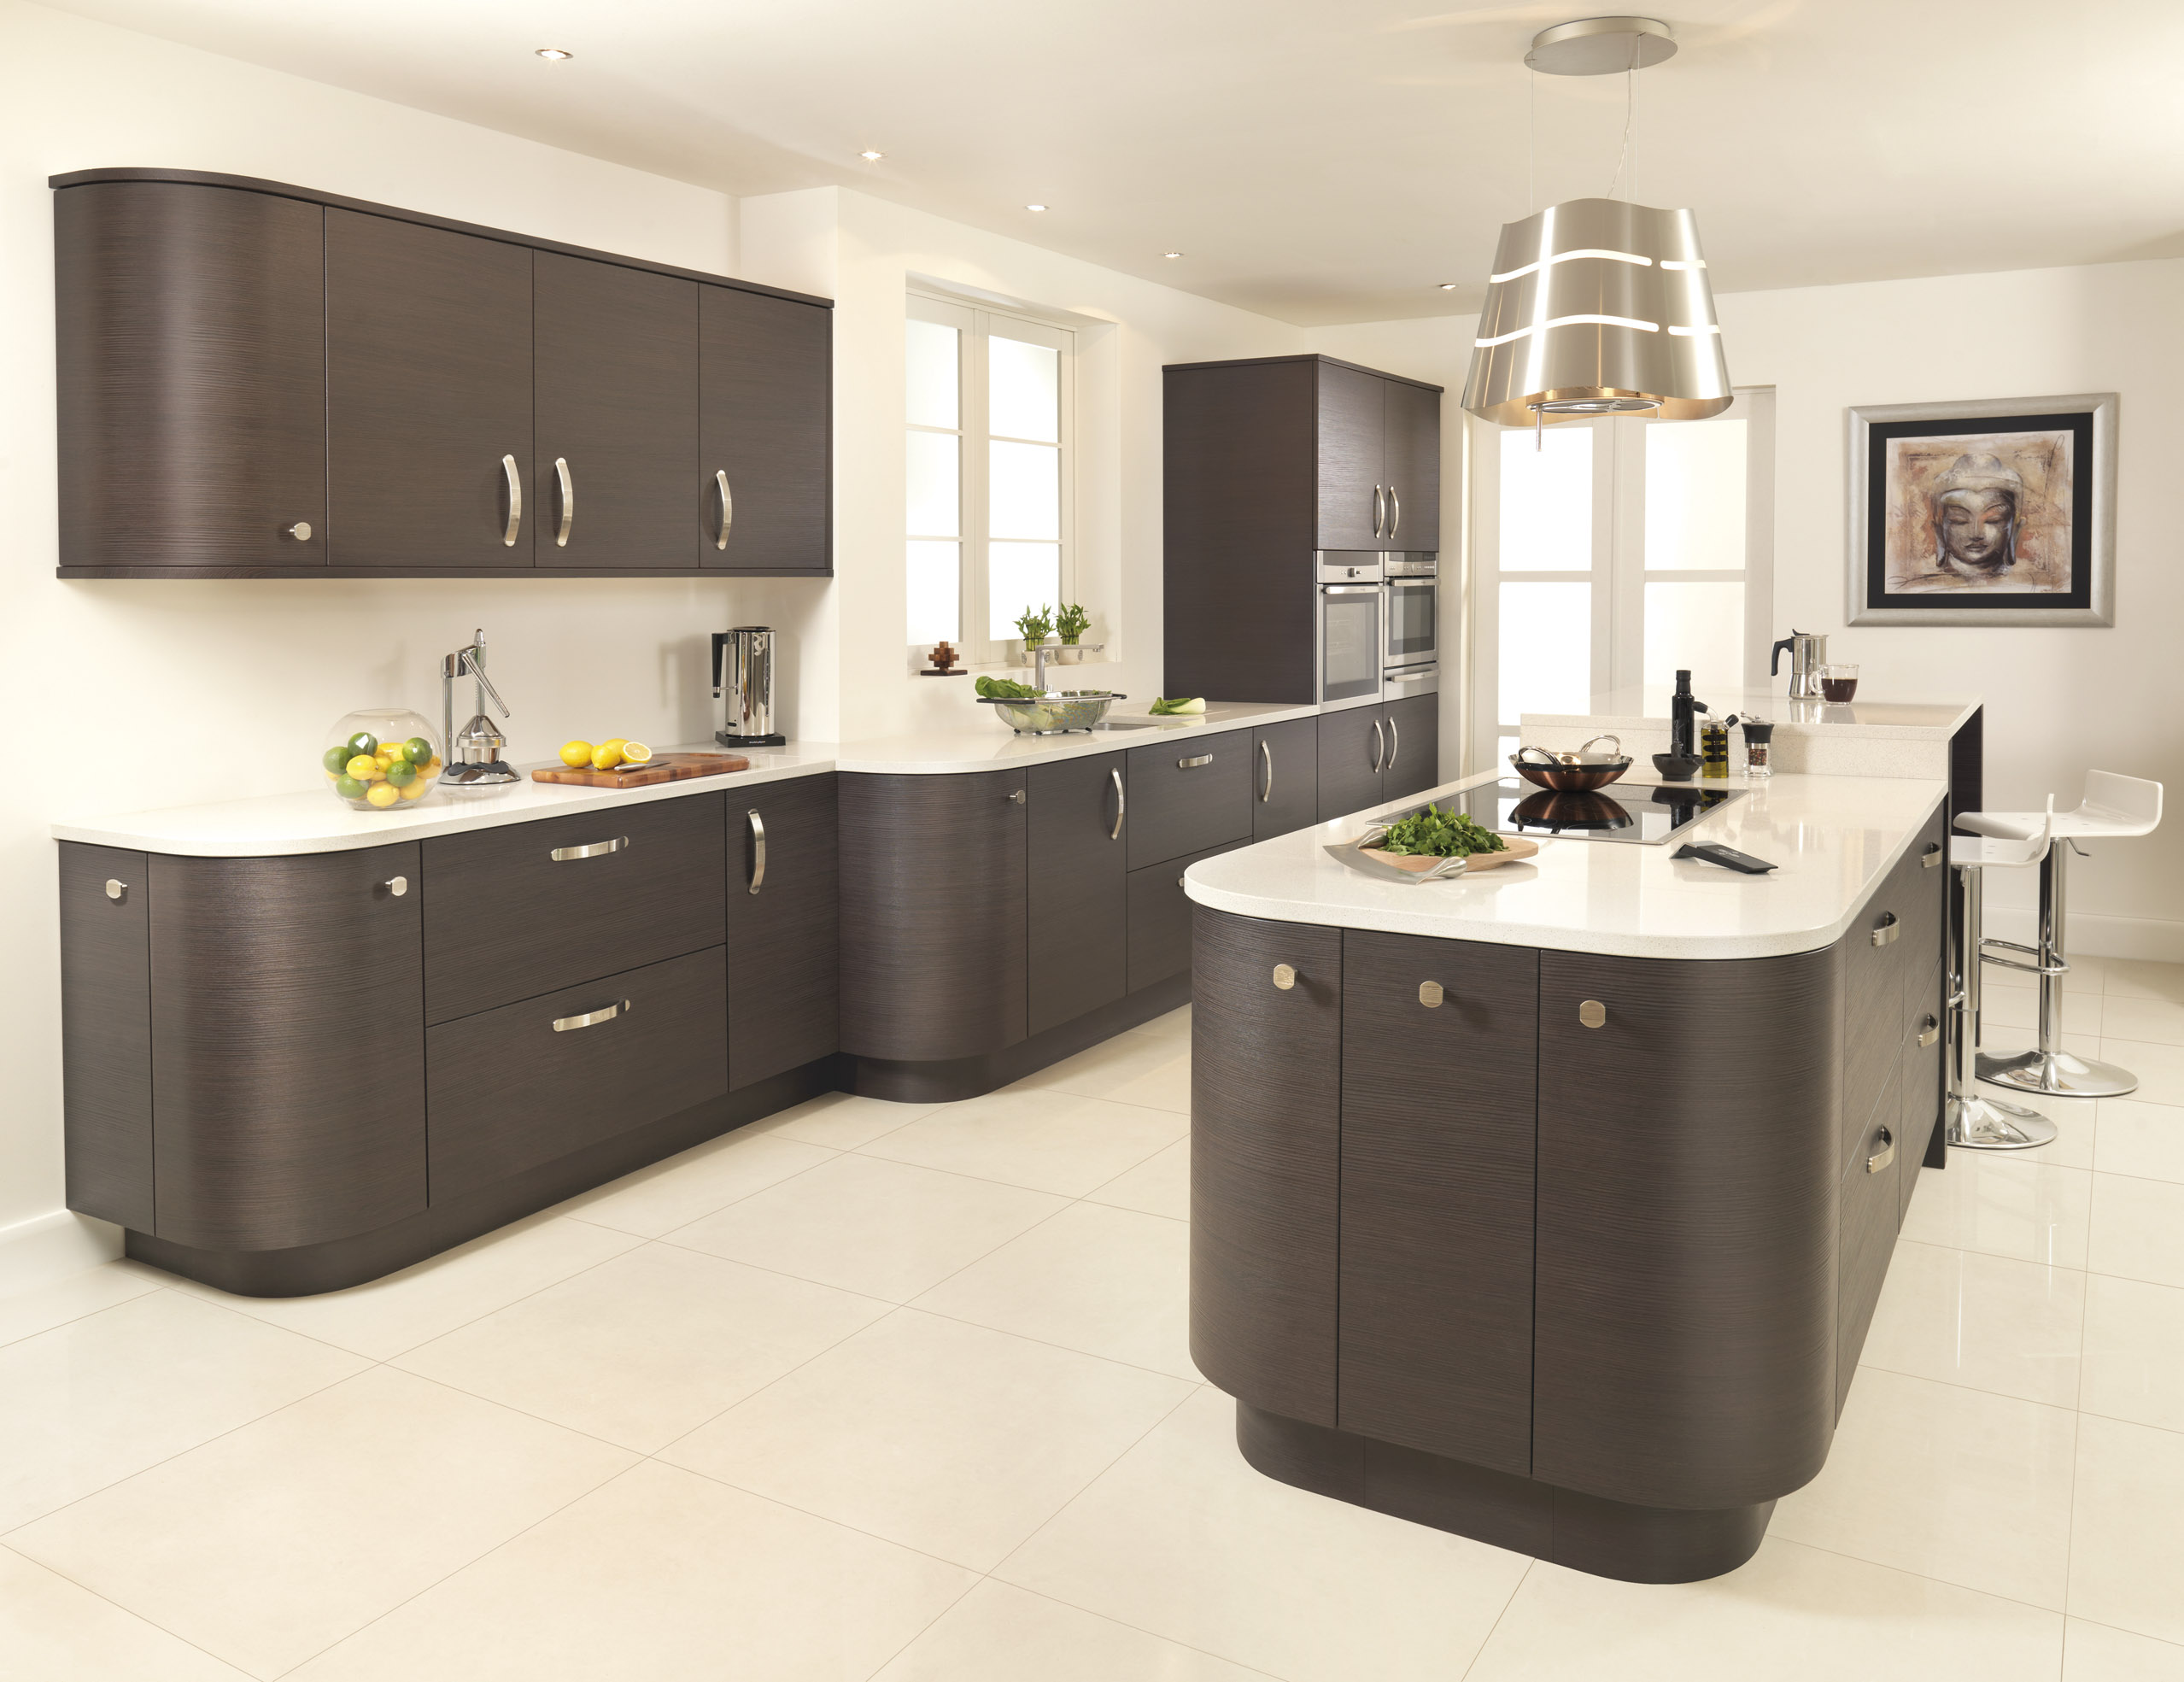 Made To Measure Kitchen Doors Made To Measure Kitchen Doors Product Categories Kitchen Mill